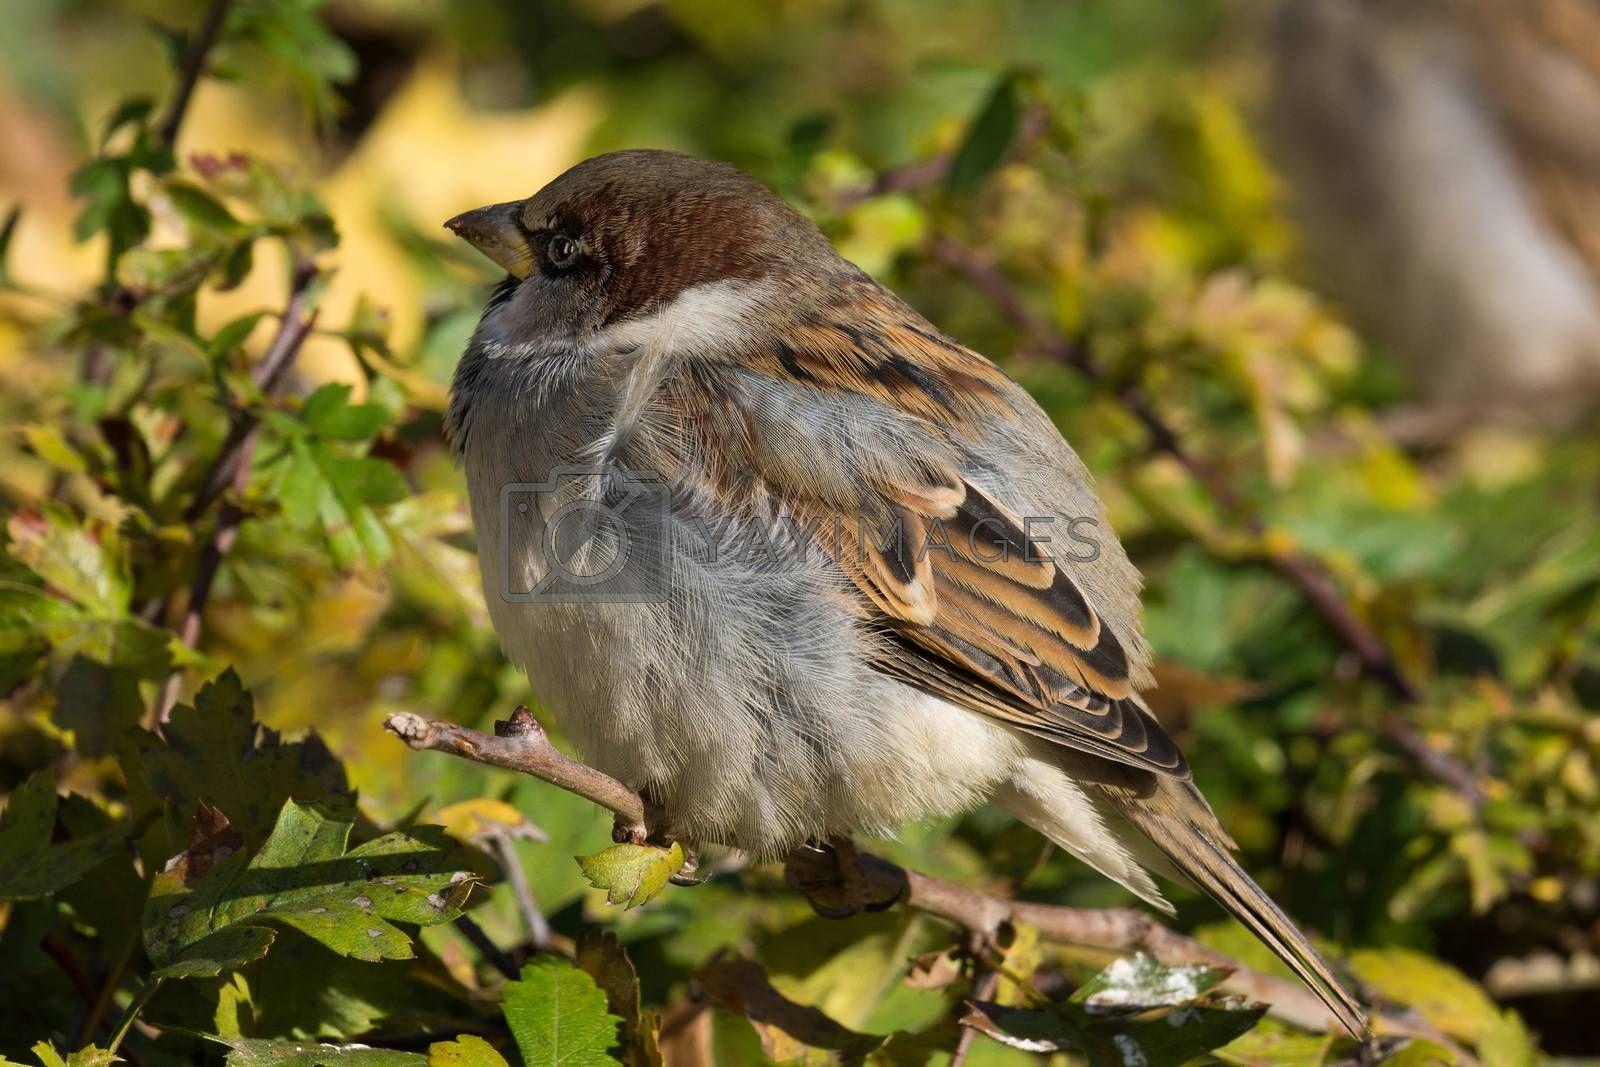 The picture shows a sparrow sitting on a bush